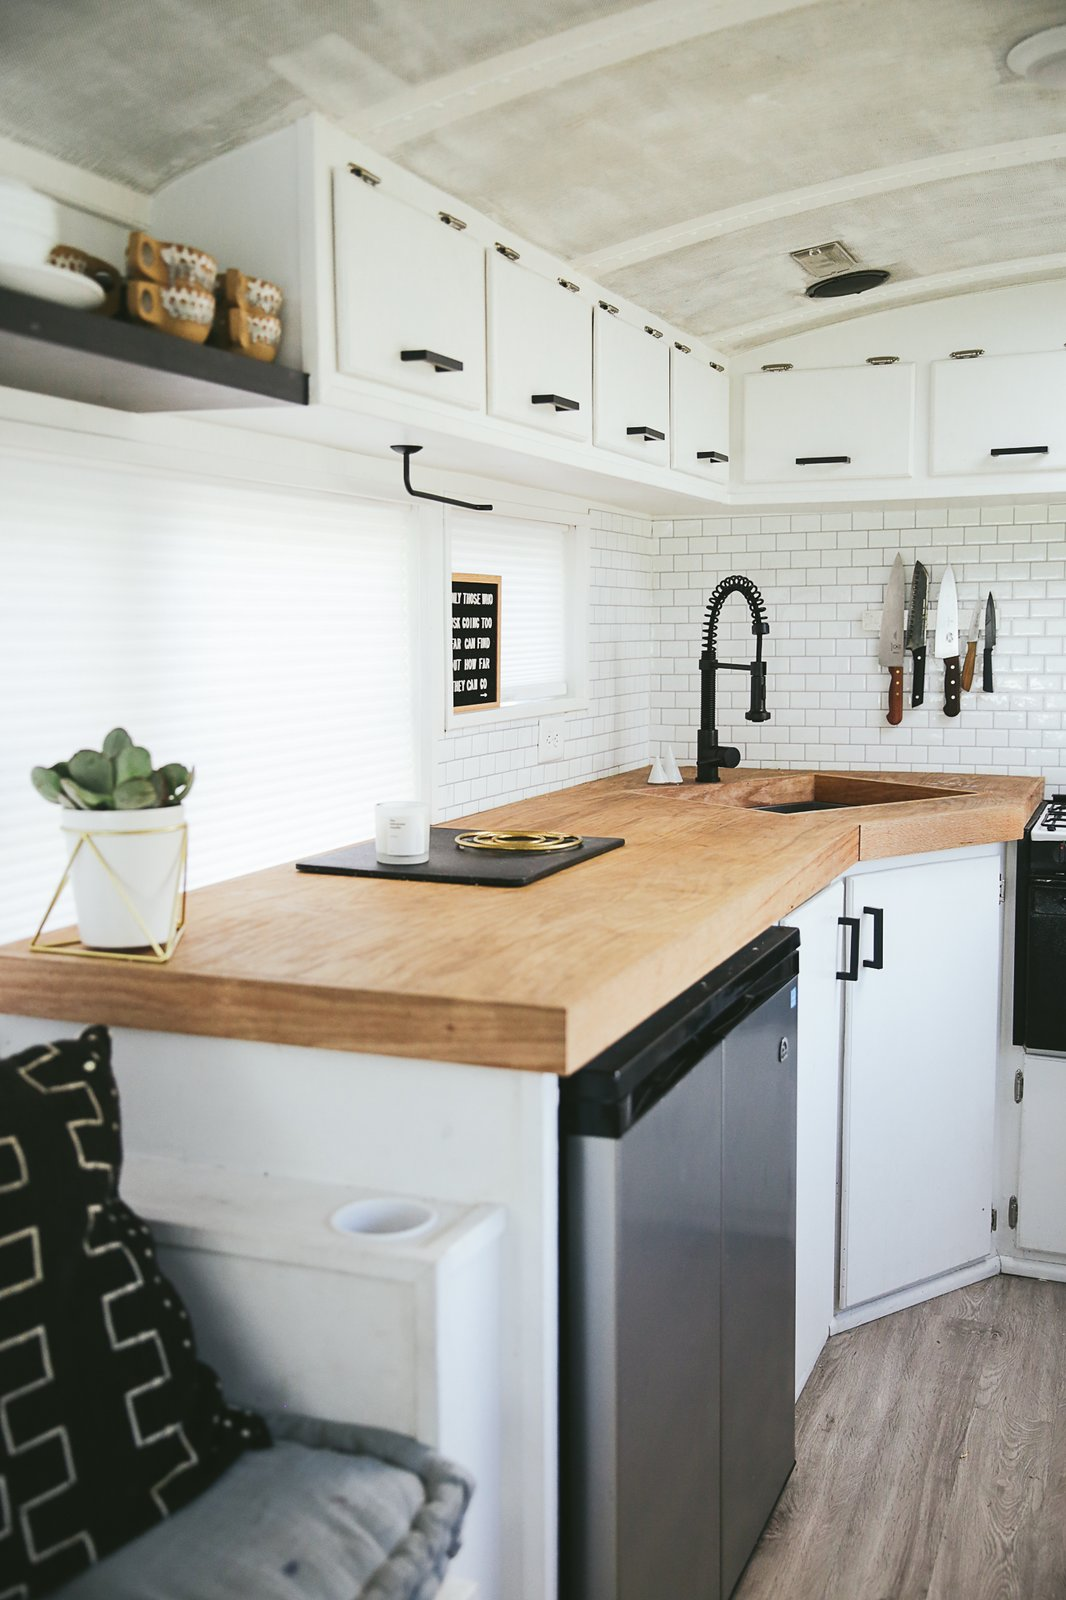 The countertops are birch-wrapped plywood. The matte black hardware and faucet punctuate white cabinets and peel-and-stick tile. The floating shelf holds dishes. There is one set for each member of the family so dirty dishes can't pile up. A magnetic knife strip and mounted paper towel holder saves counter space. The dish rack is folded and stored under the sink when not in use.